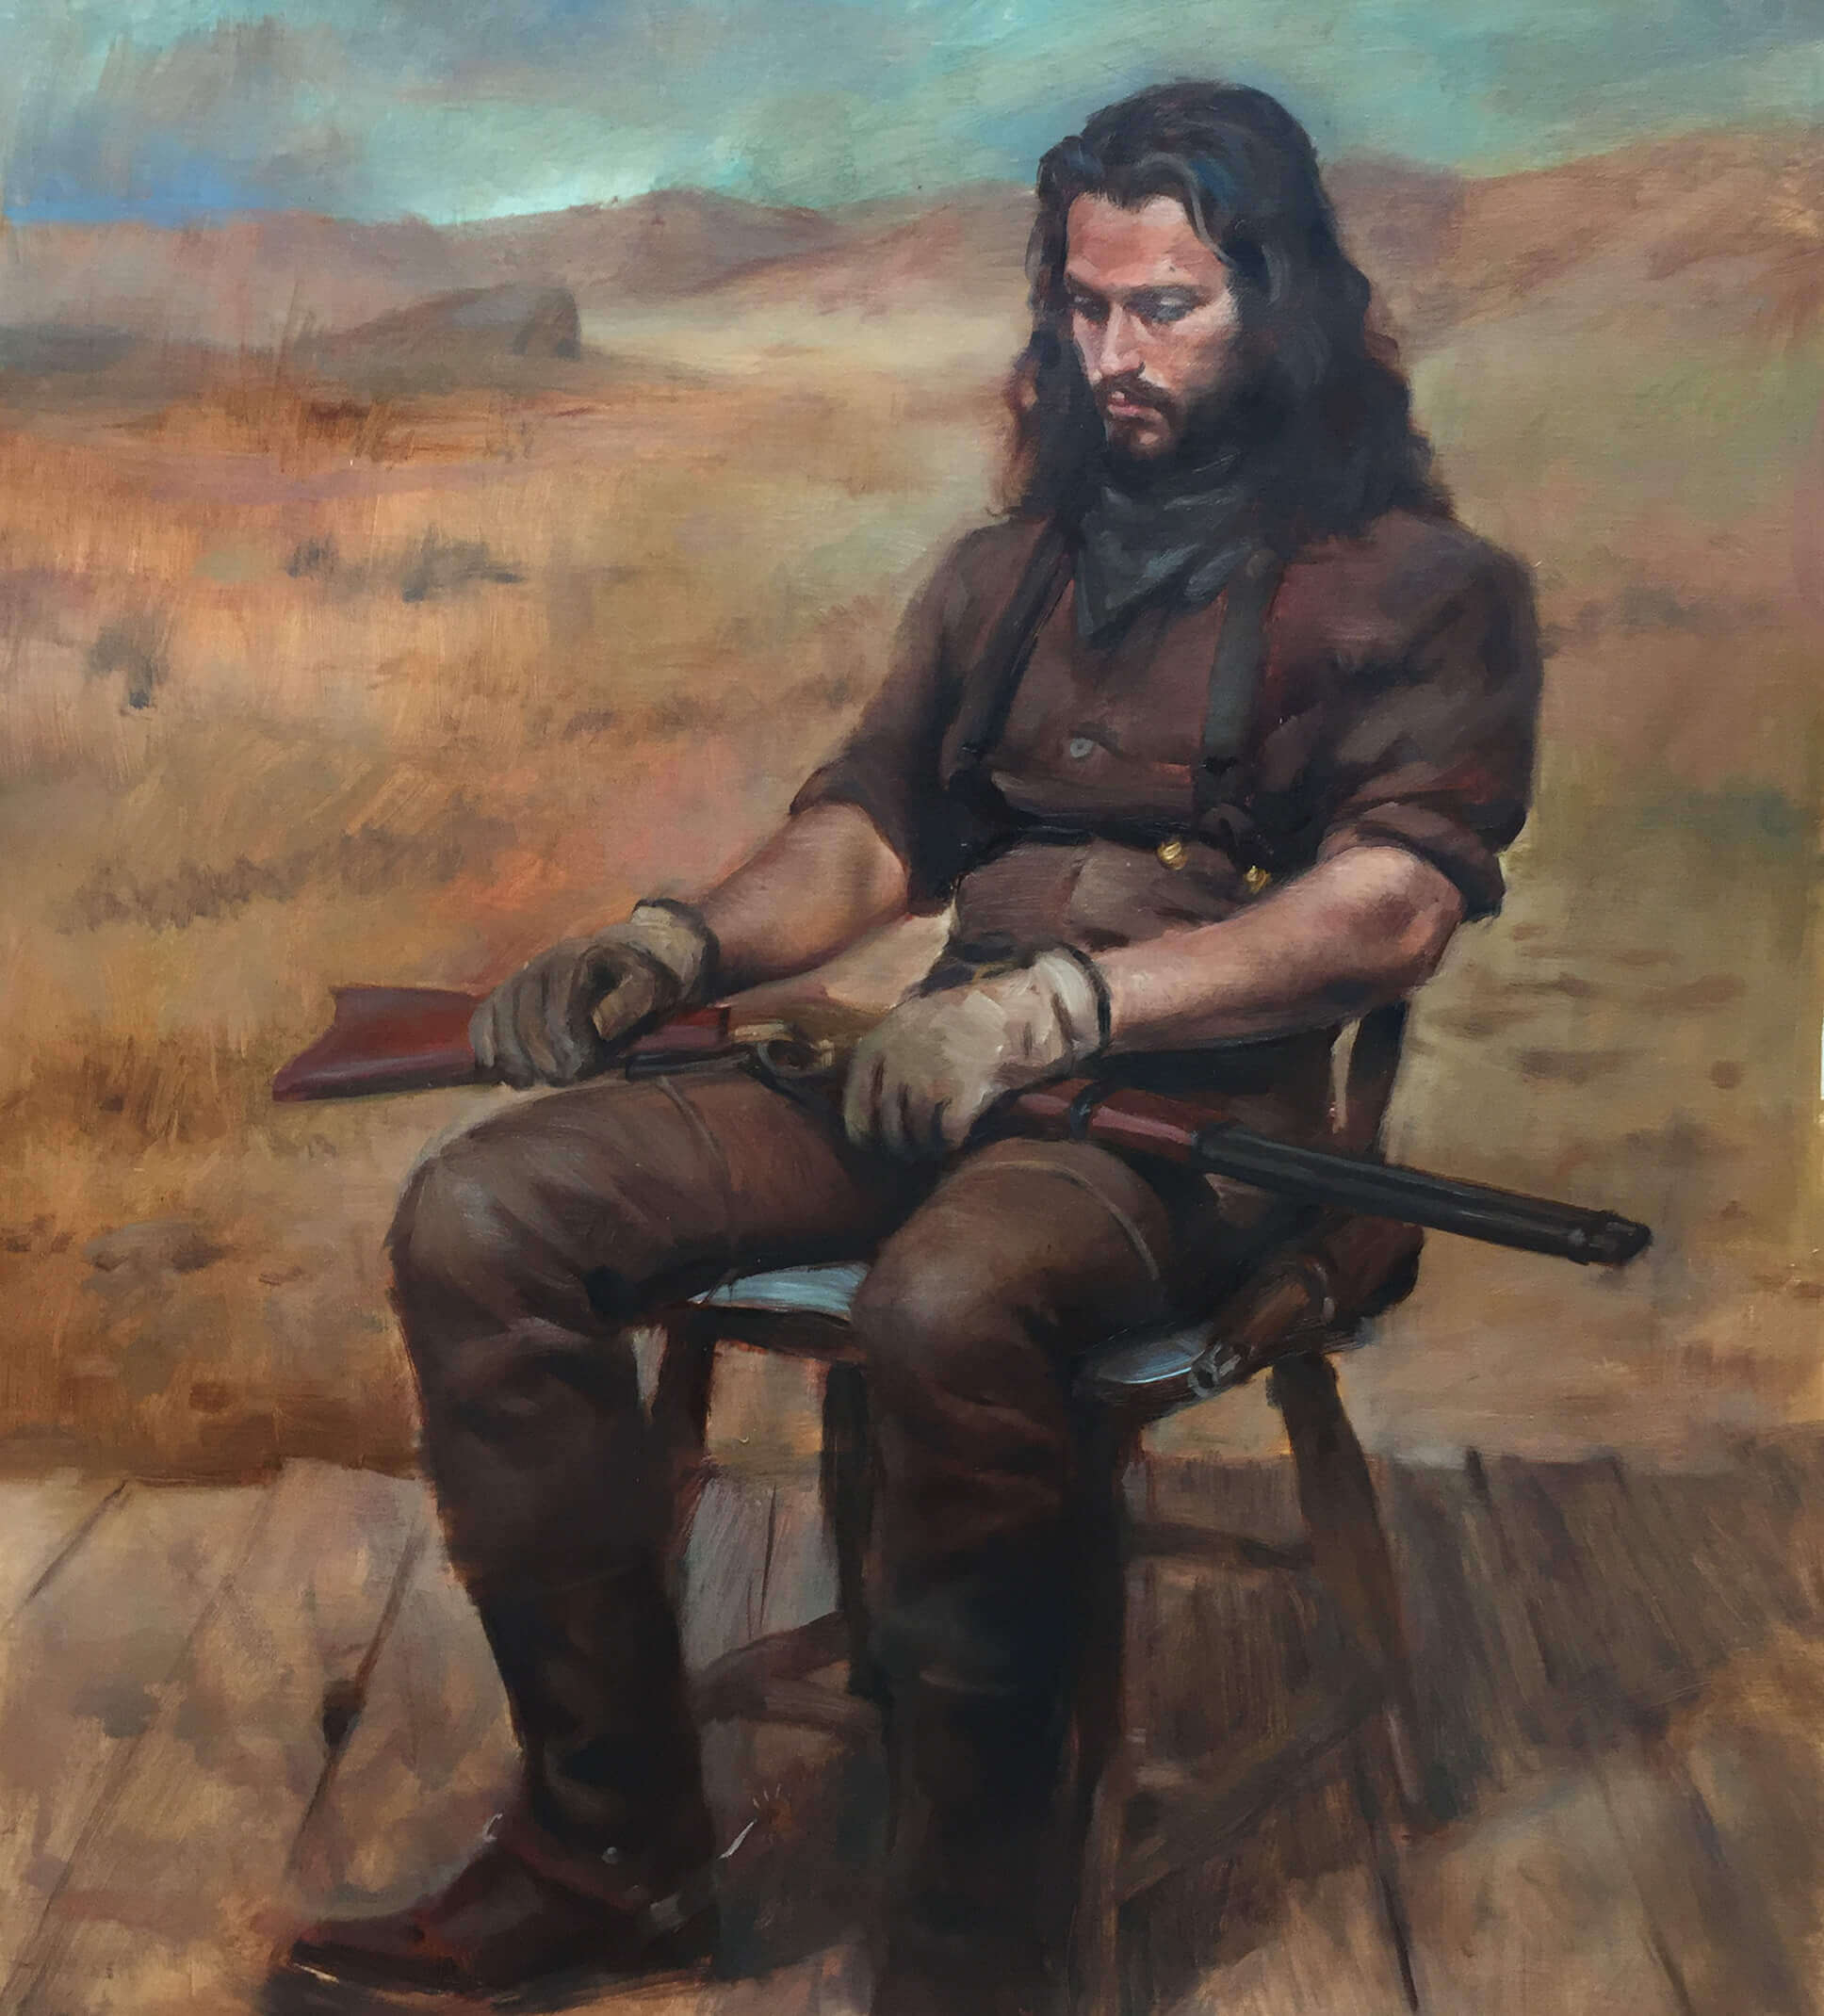 Oil painting of a contemplative man dressed in historical western clothing sitting in a chair with a rifle resting on his lap